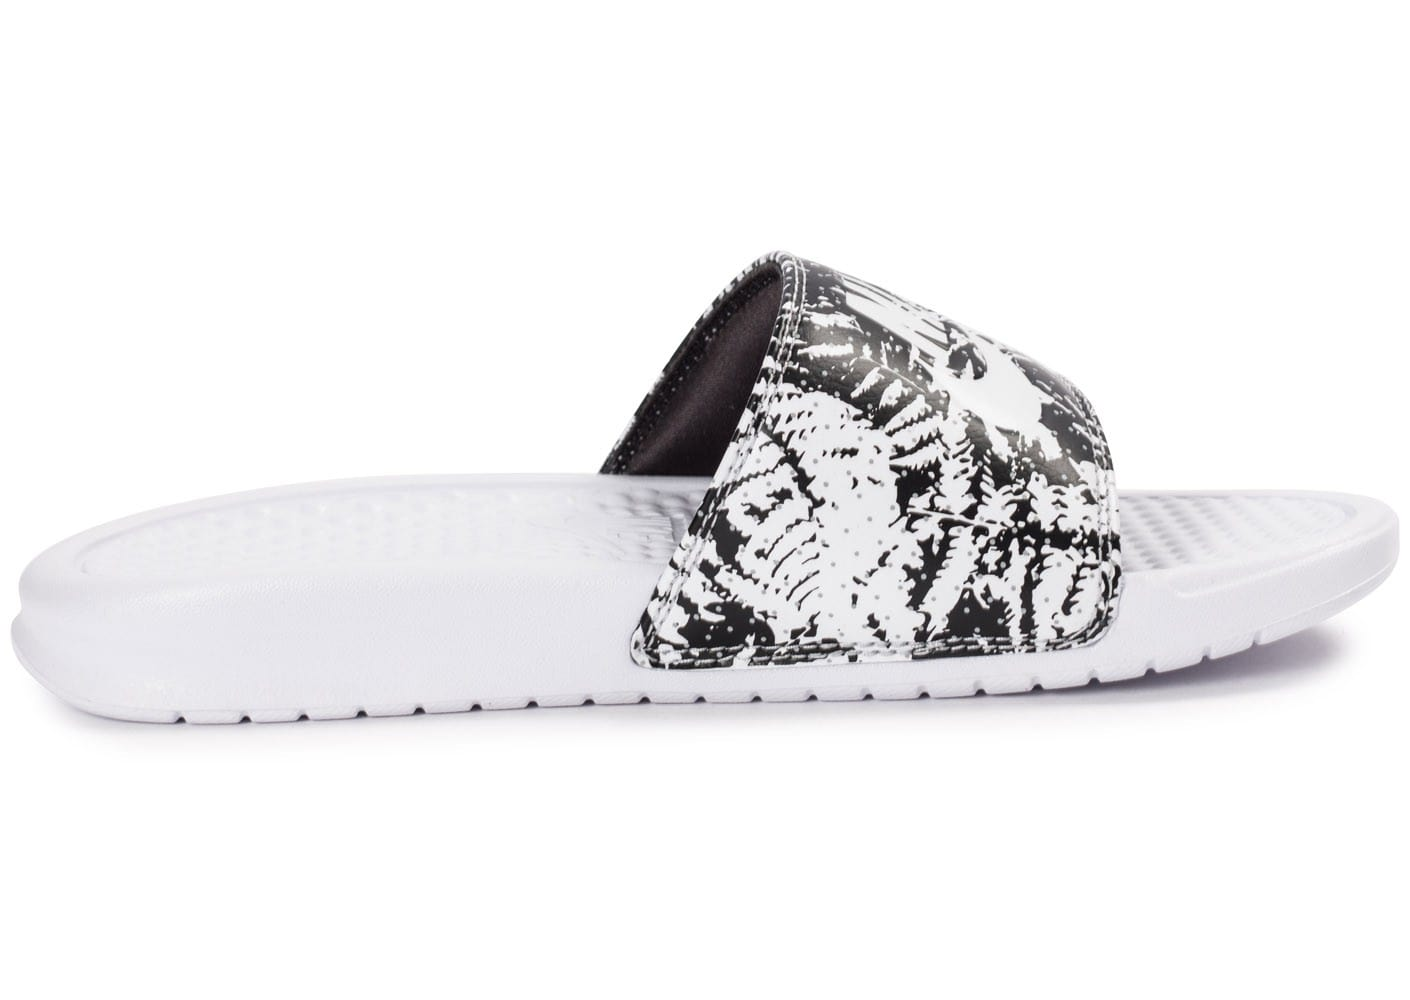 newest collection 5ea5f f94ba ... Chaussures Nike Benassi Just Do It print blanche vue dessous ...